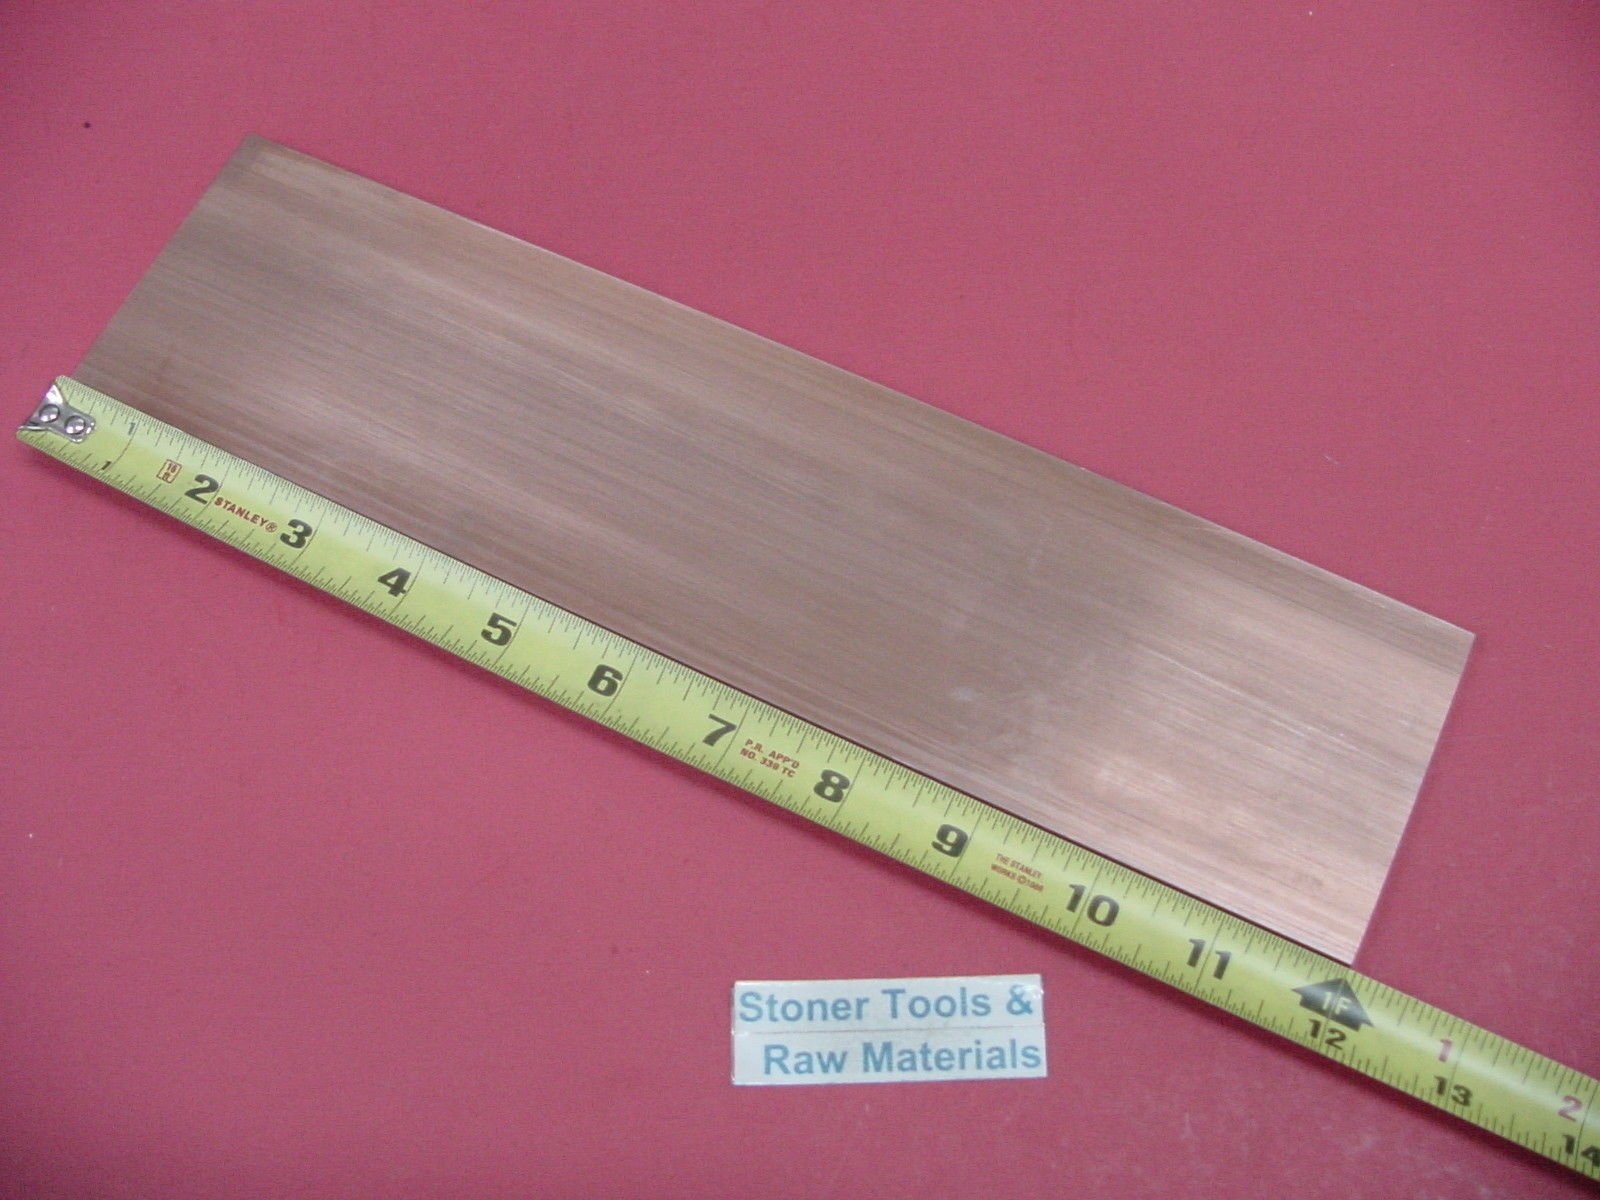 1/4''x 3'' C110 COPPER BAR 12'' long Solid Flat Bar Extruded Mill Bar Stock H04 by Stoner Metals